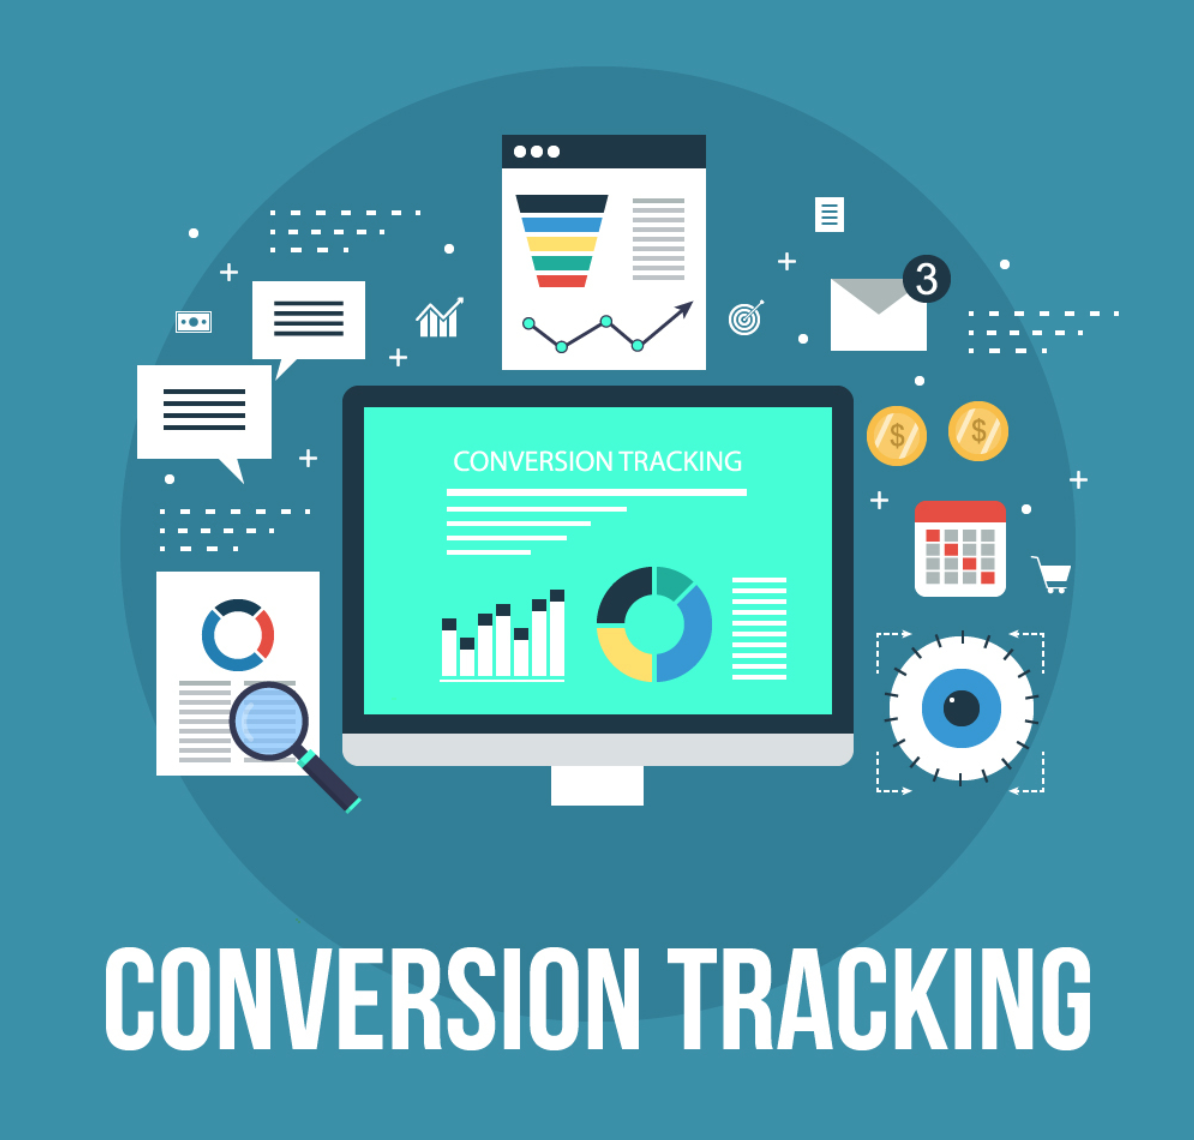 Conversion Tracking Image